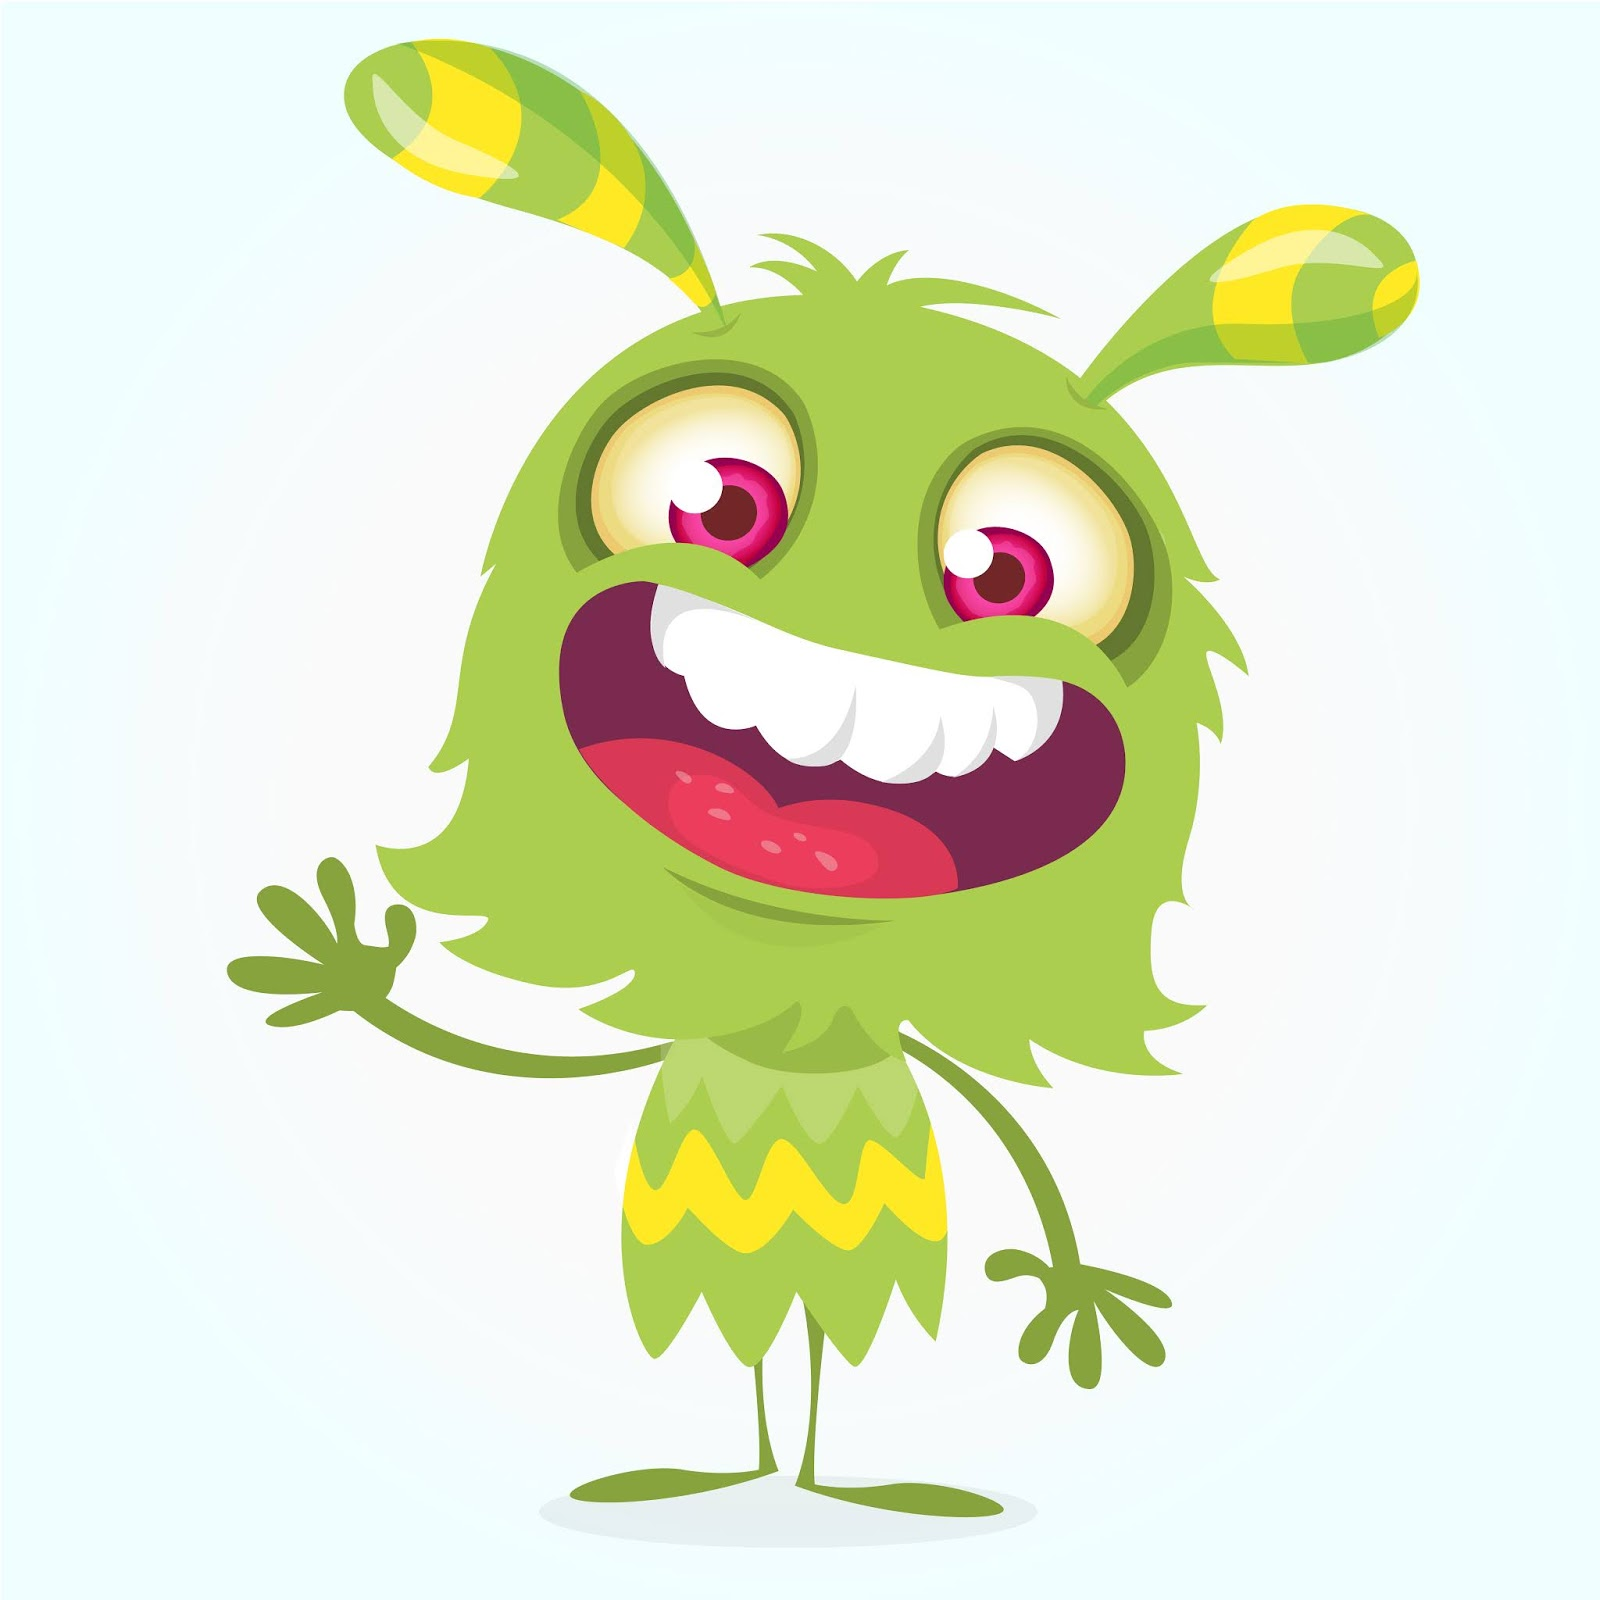 Cartoon Cool Monster Illustration Free Download Vector CDR, AI, EPS and PNG Formats